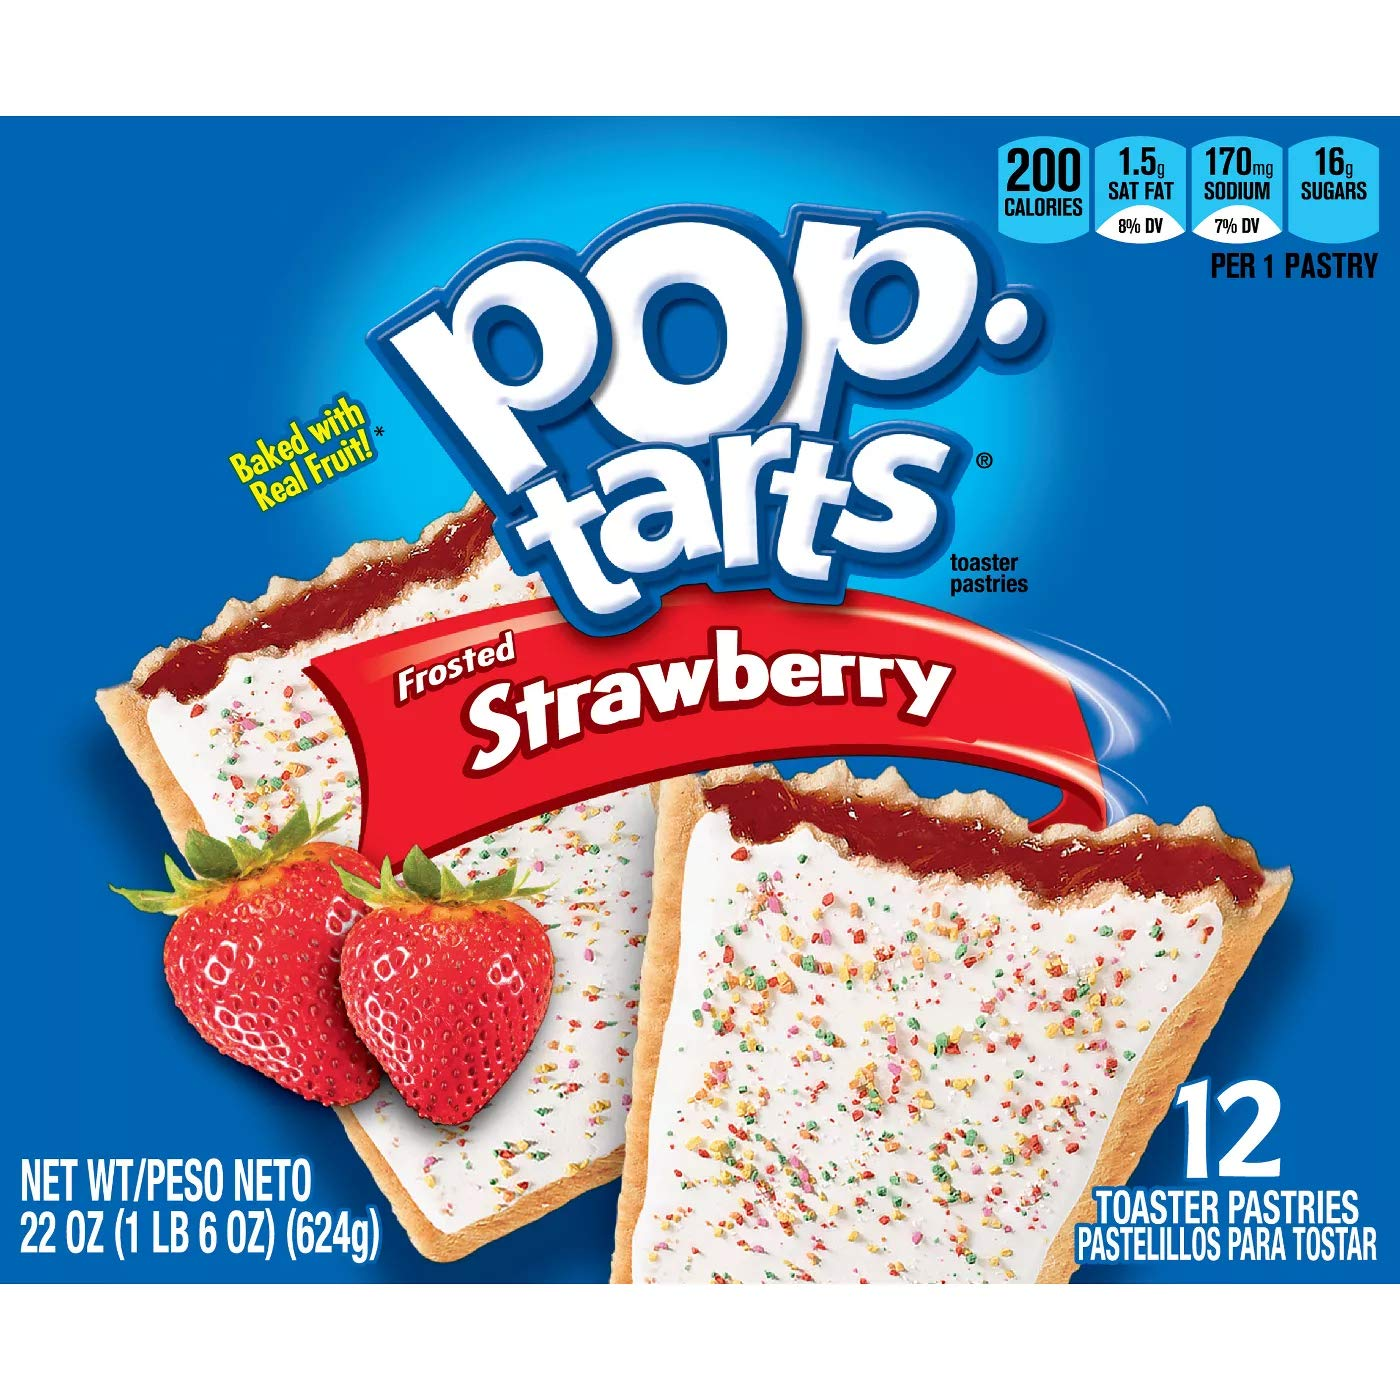 Kellogg's Pop-Tarts Frosted Strawberry Toaster Pastries (12 count)